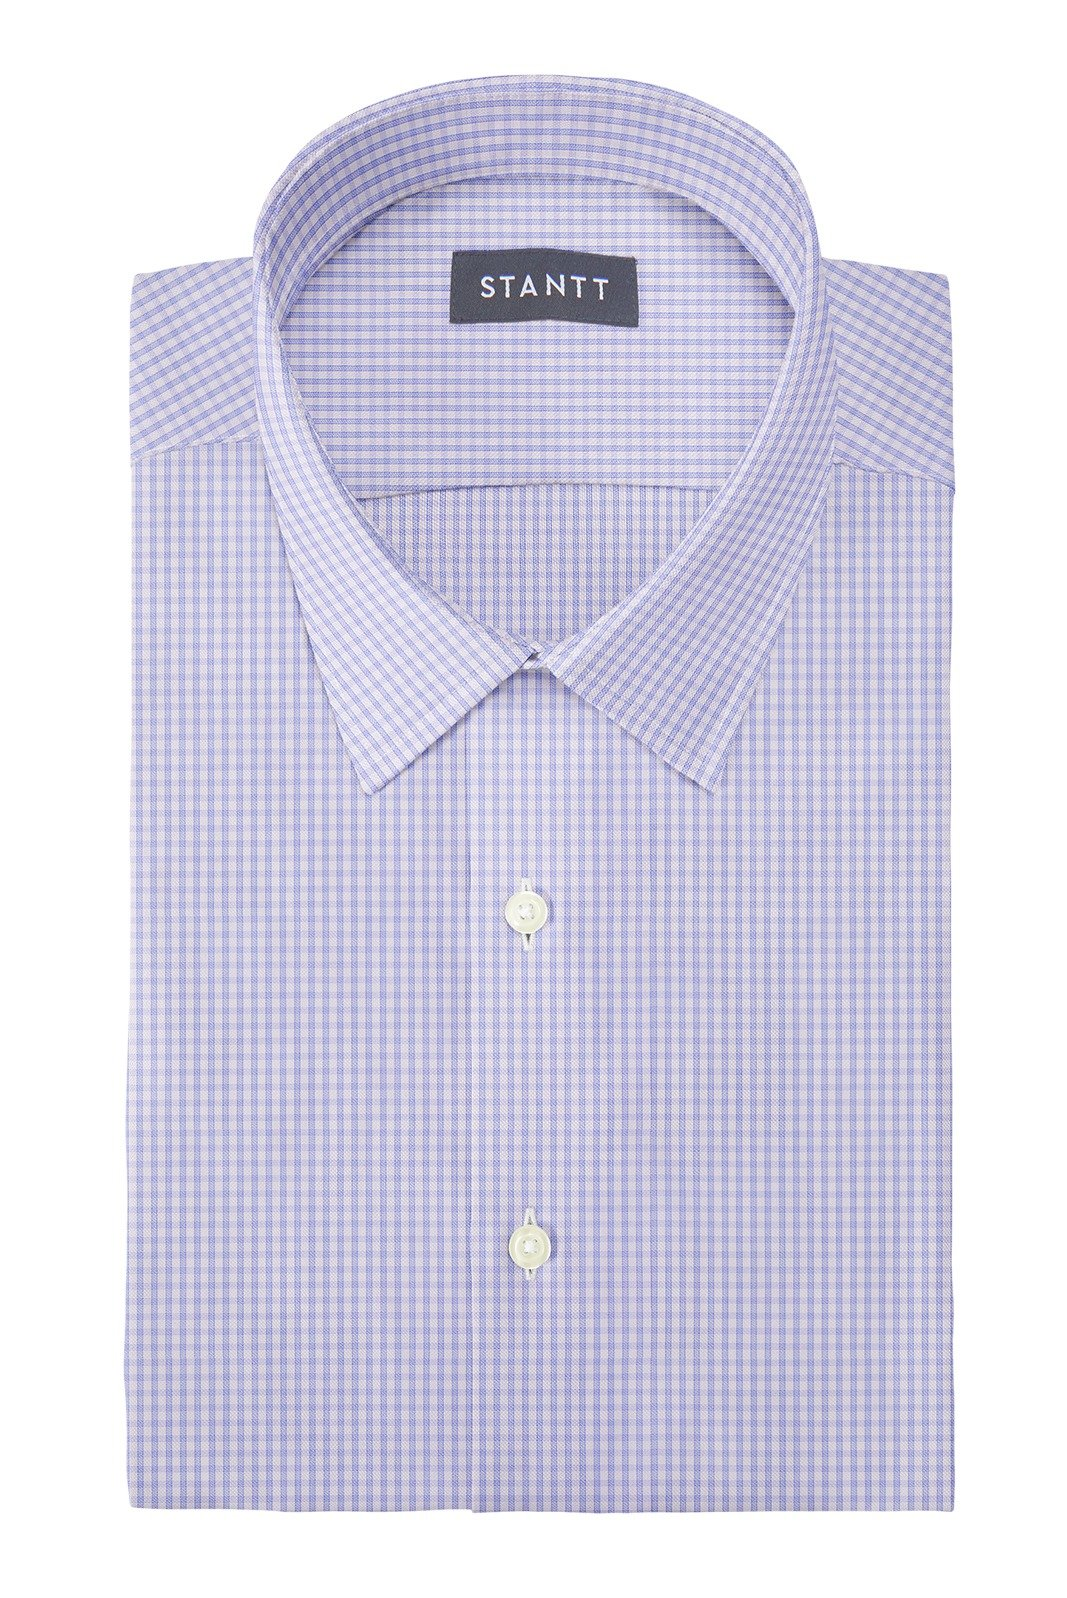 Wrinkle-Resistant Sky Blue Grid Check: Semi-Spread Collar, French Cuff